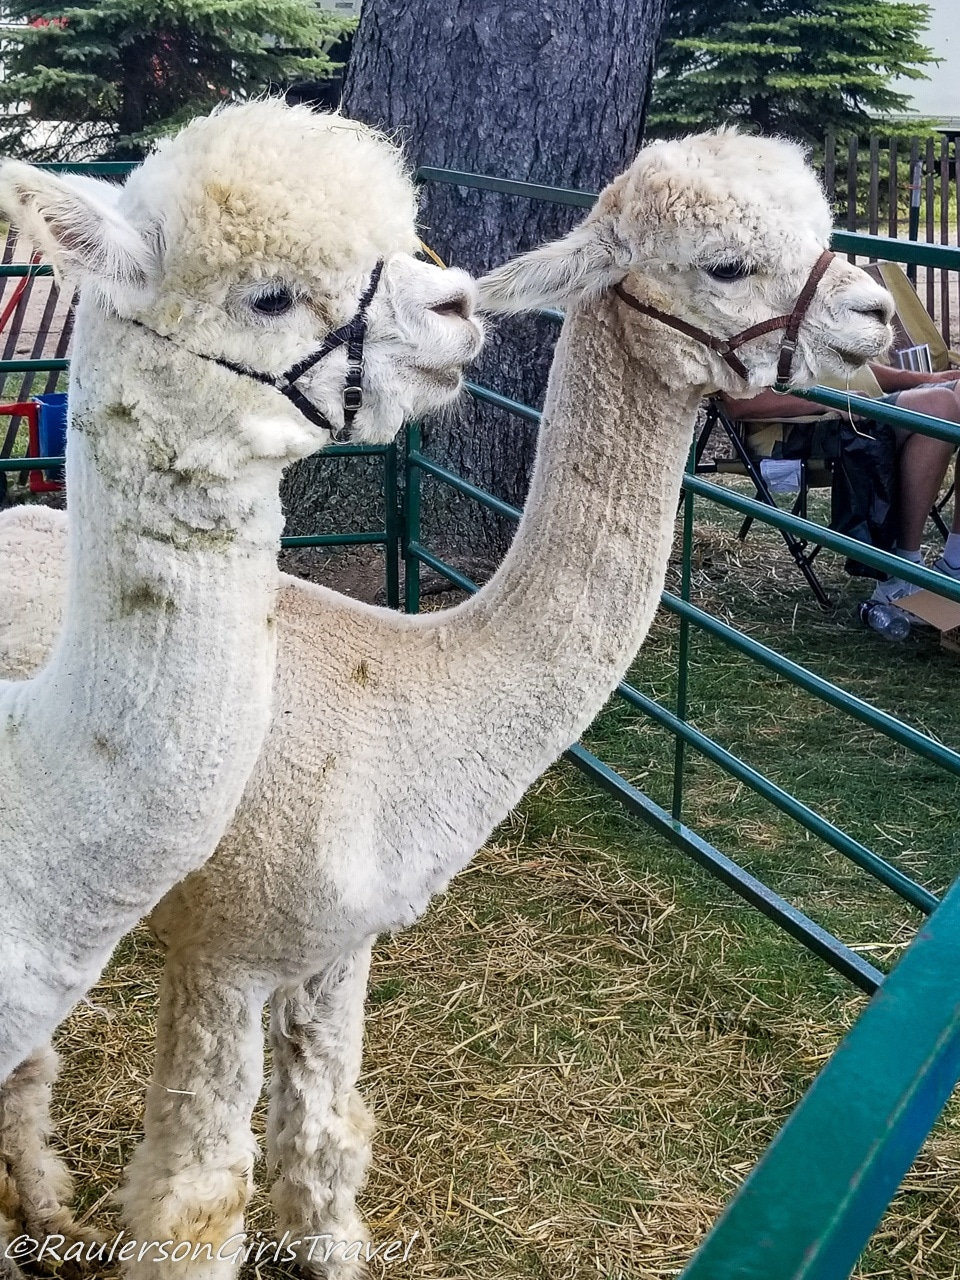 Two alpacas at the Lavender Festival